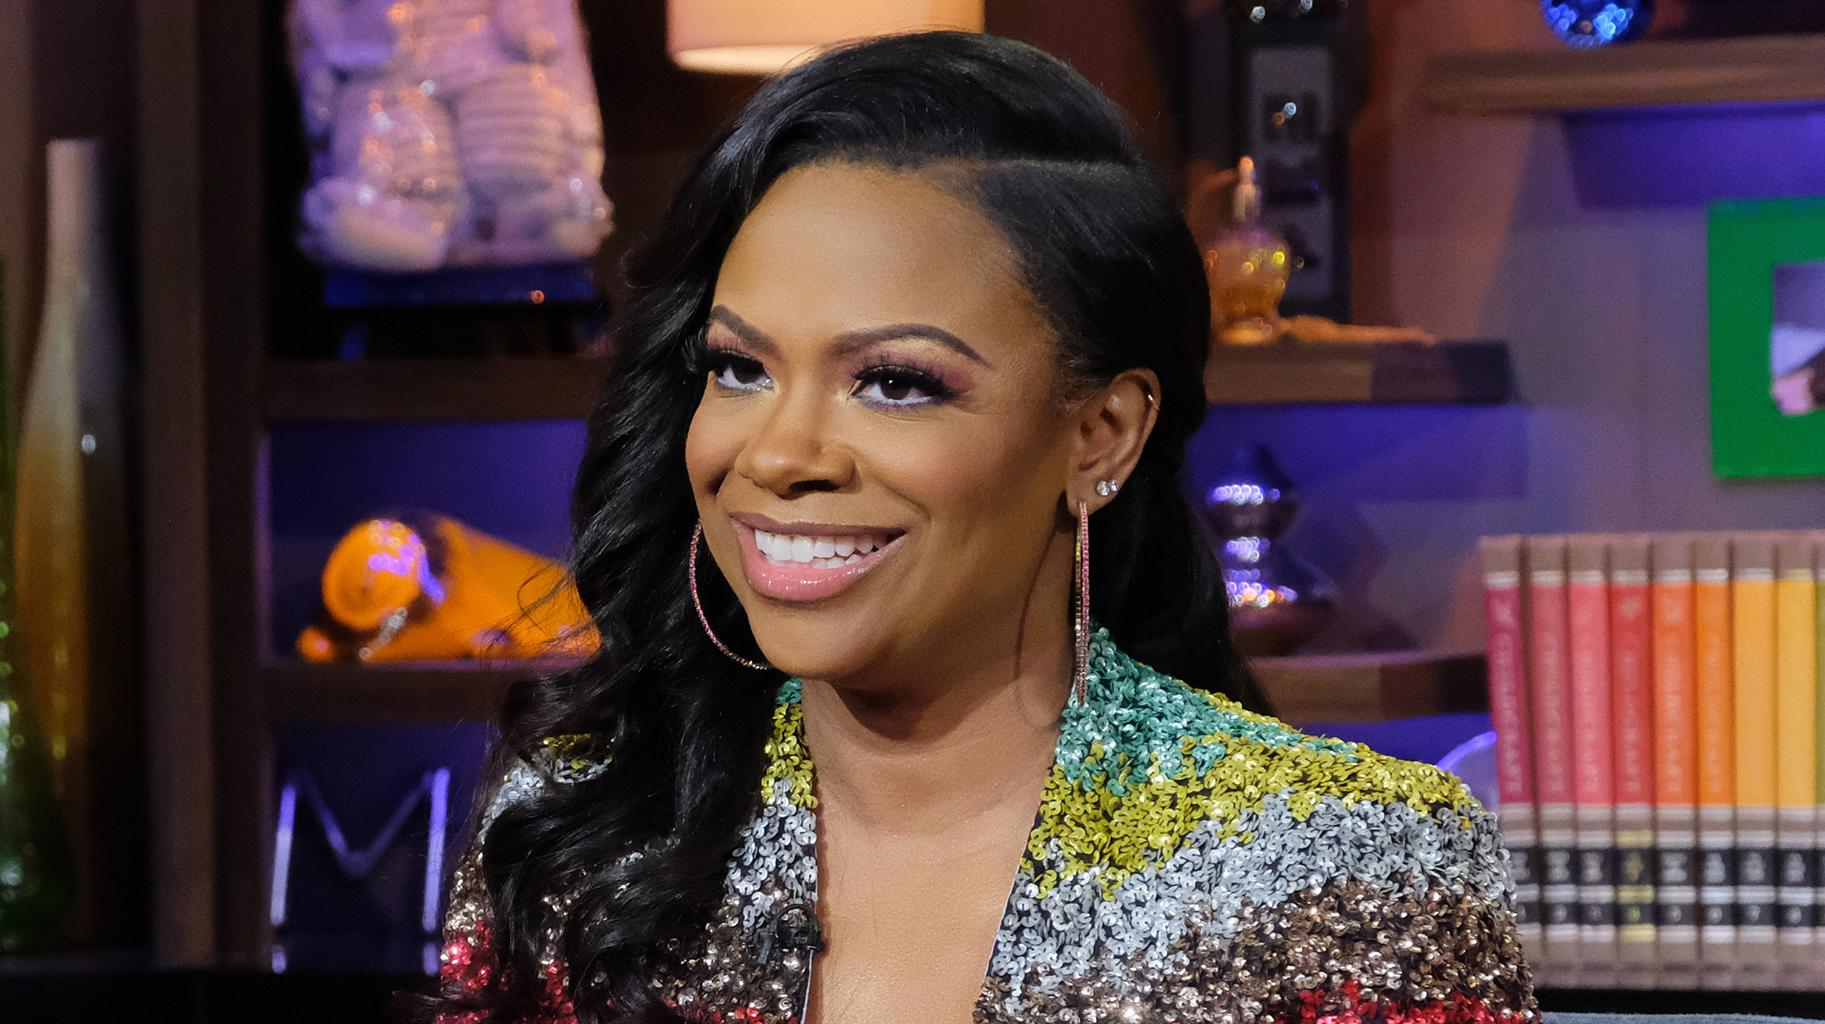 Kandi Burruss Raves About Running Multiple Businesses